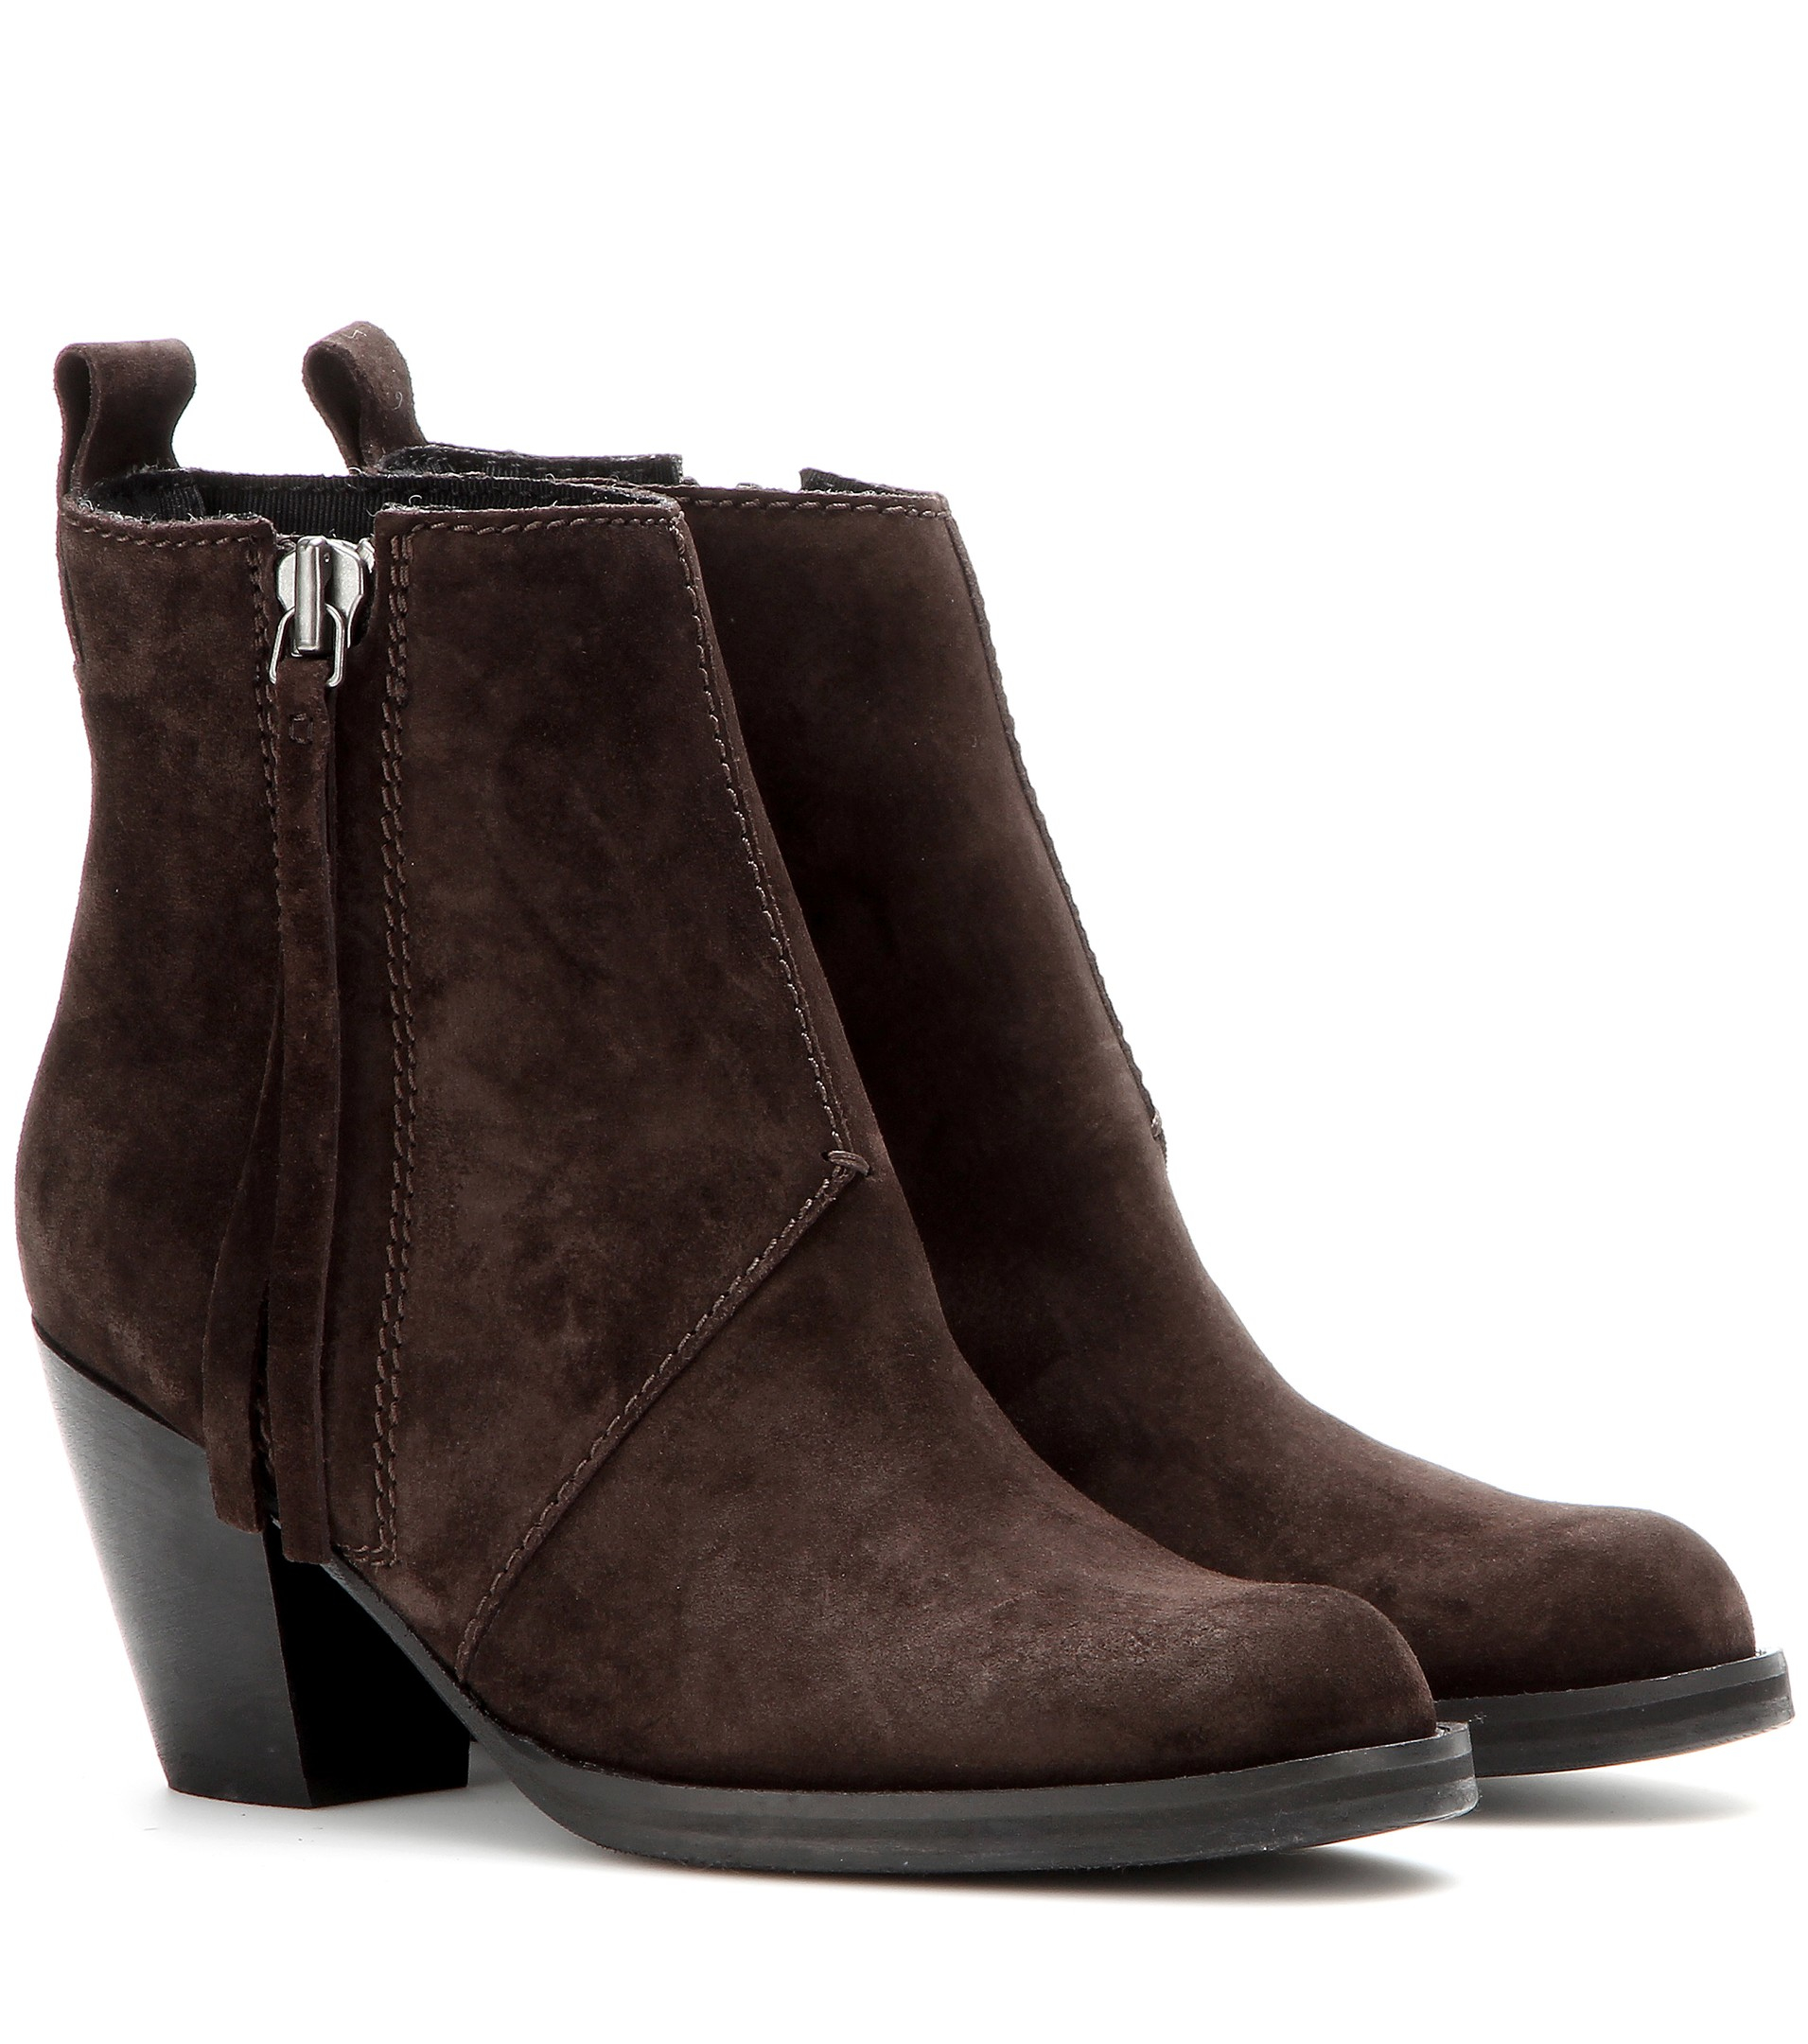 Acne studios Pistol Short Suede Ankle Boots in Brown | Lyst